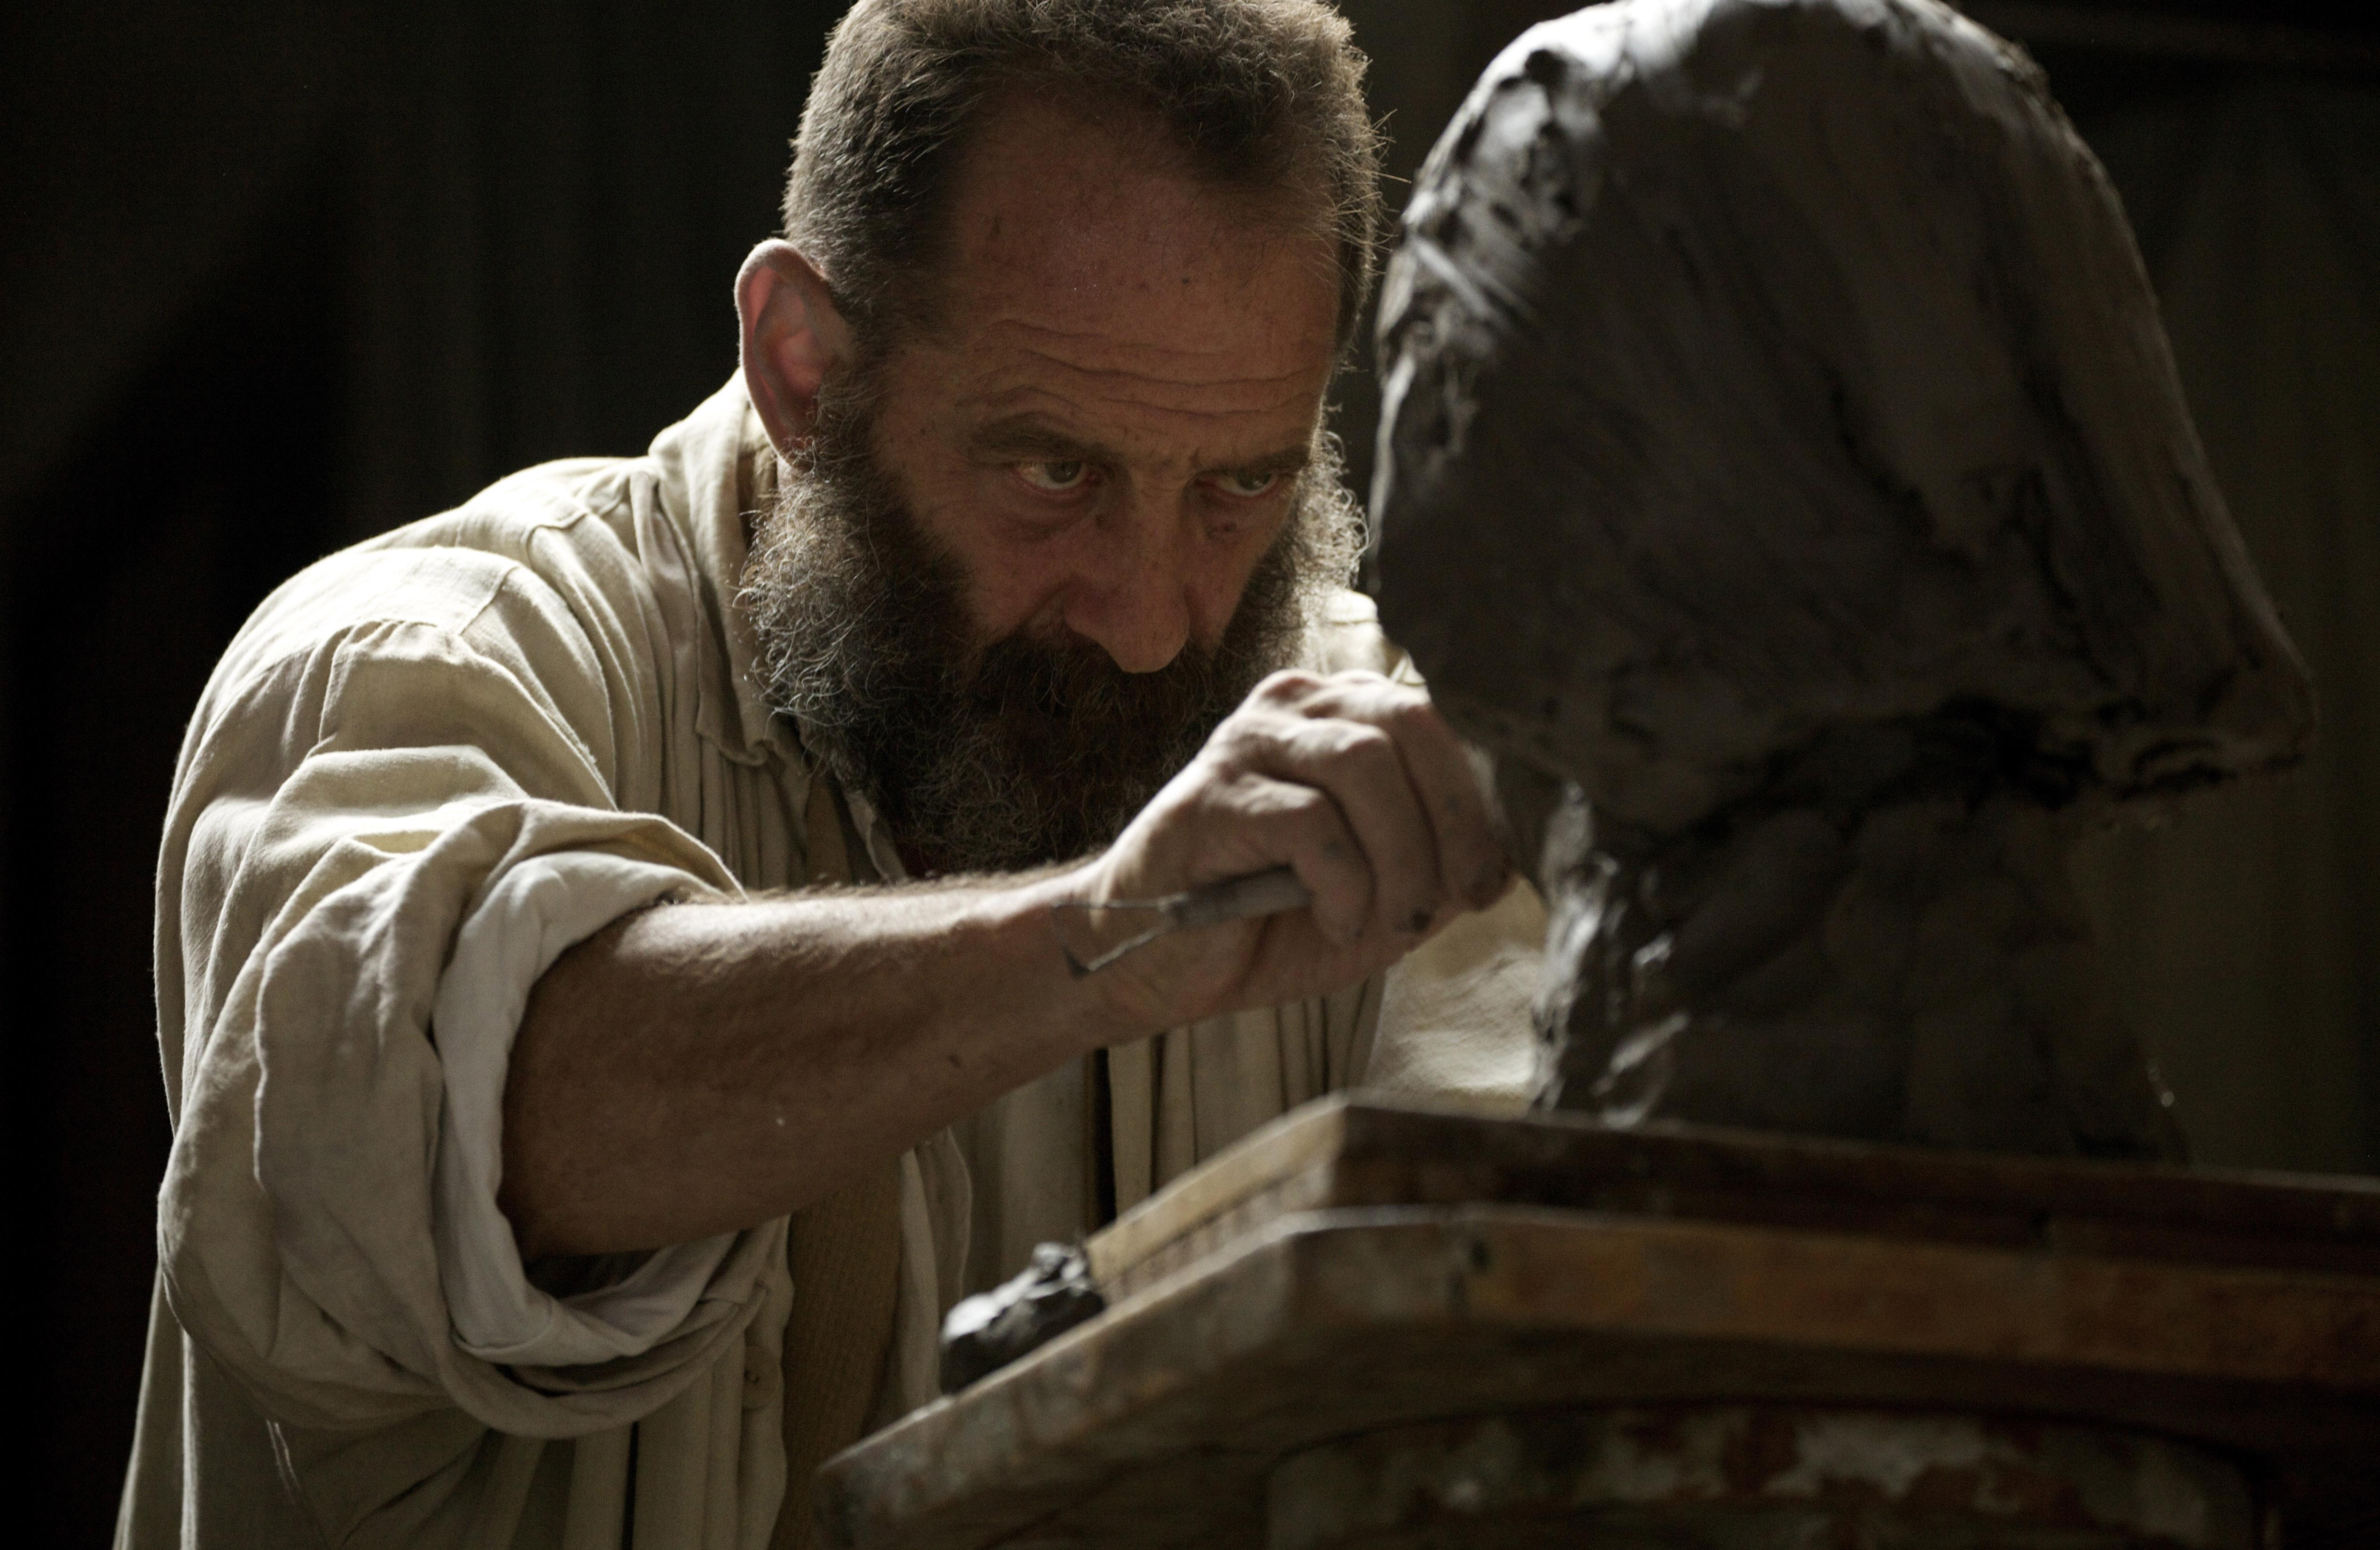 Rodin: Vincent Lindon all'opera